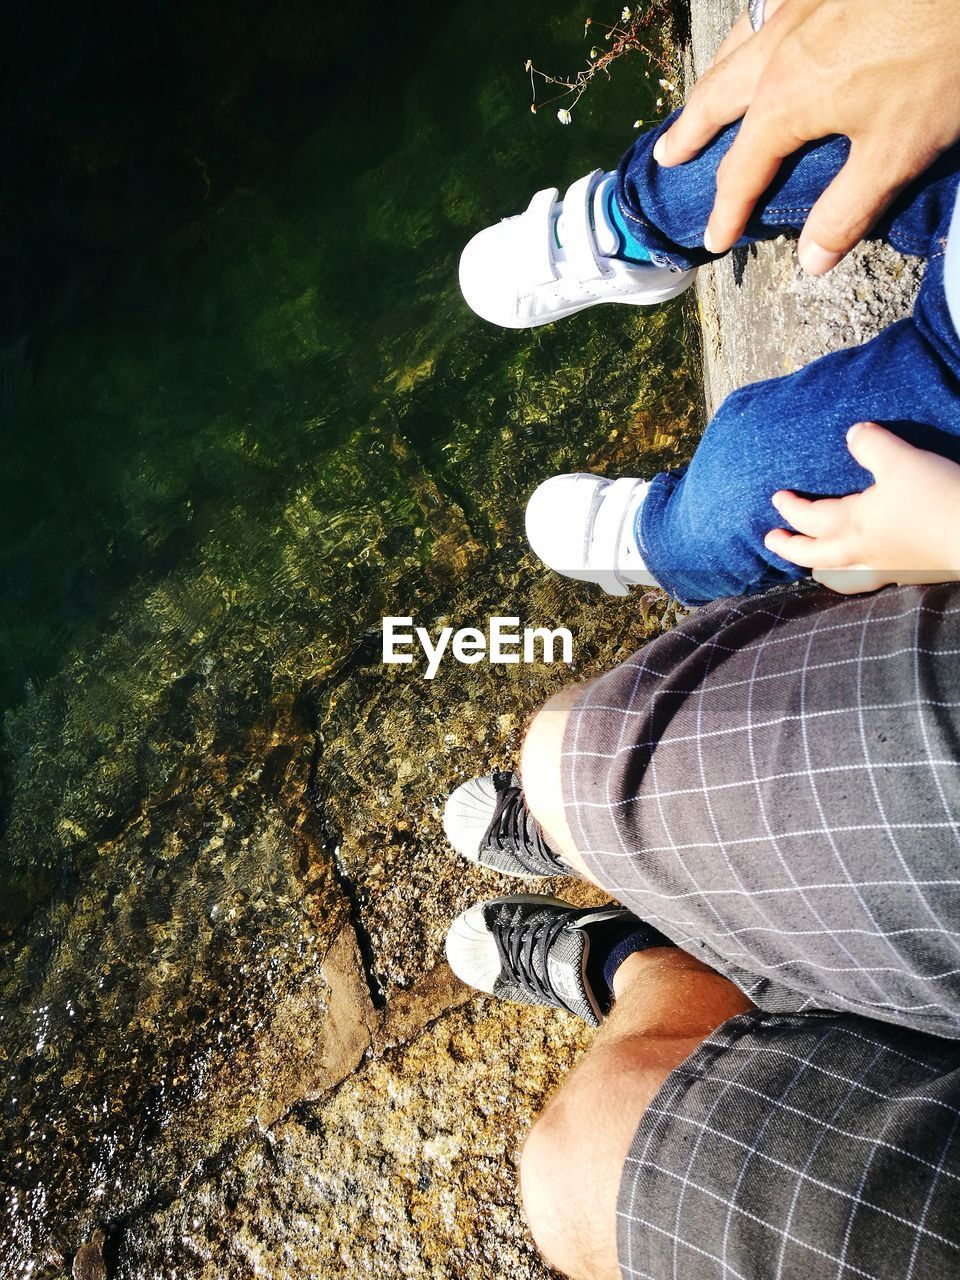 low section, real people, human leg, standing, high angle view, lifestyles, people, leisure activity, body part, shoe, human body part, day, nature, women, adult, casual clothing, men, two people, outdoors, jeans, human foot